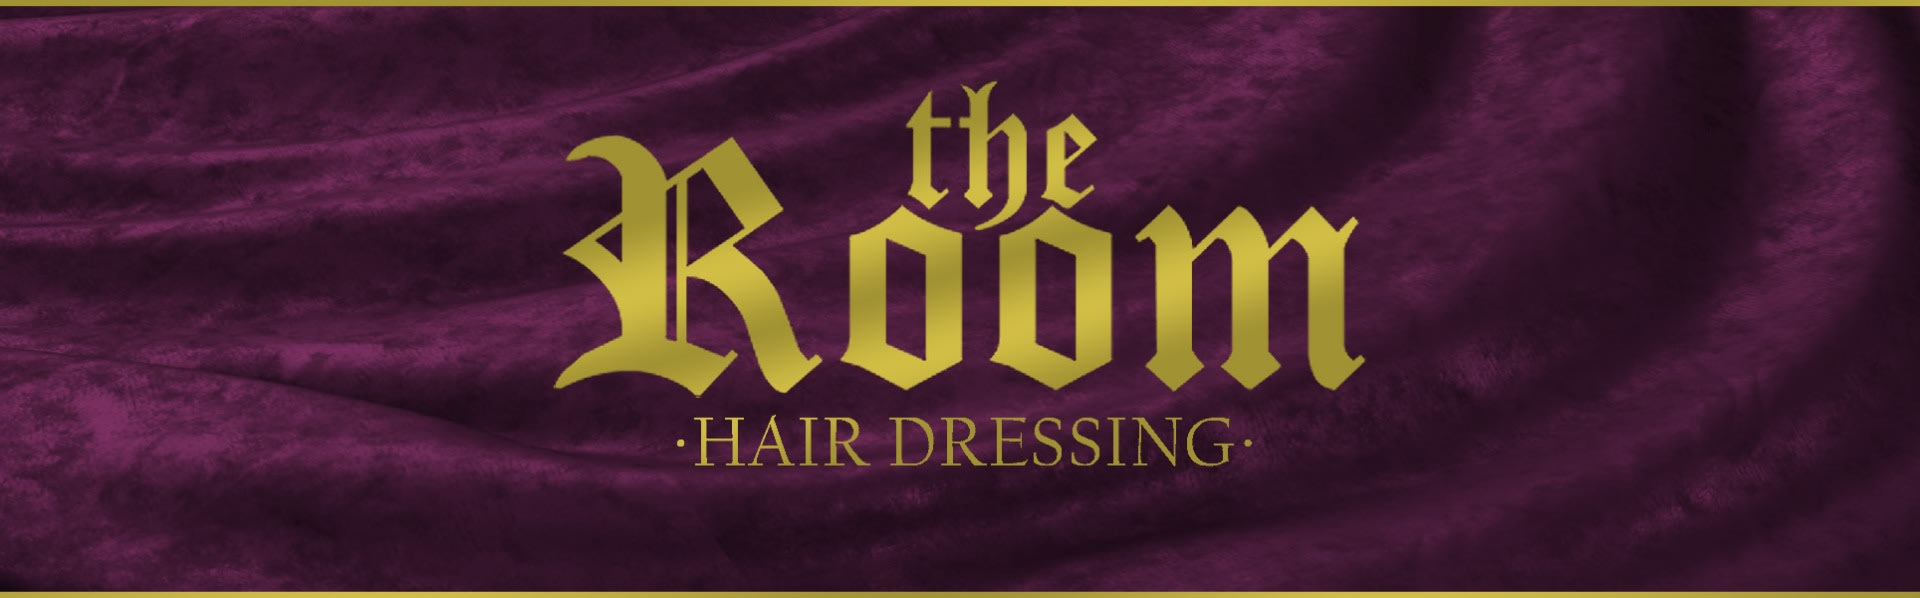 The Room Hairdressing